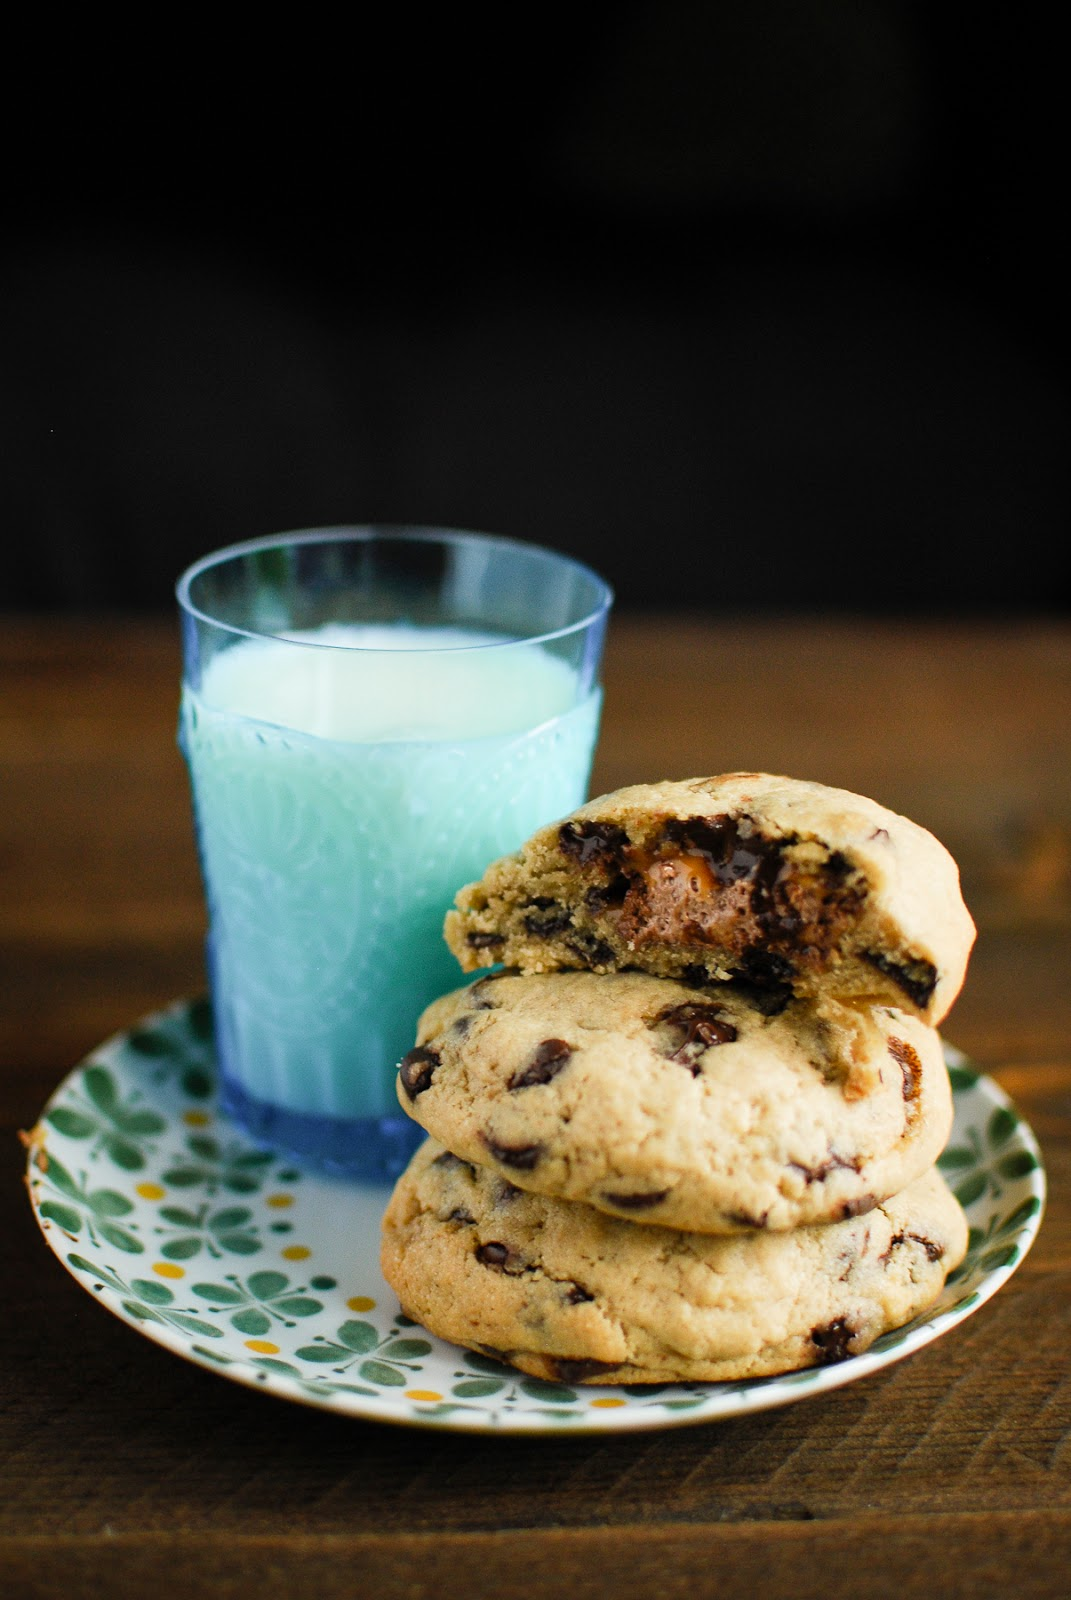 What better way to indulge your sweet tooth than stuffing a mars bar into a chocolate chip cookie.